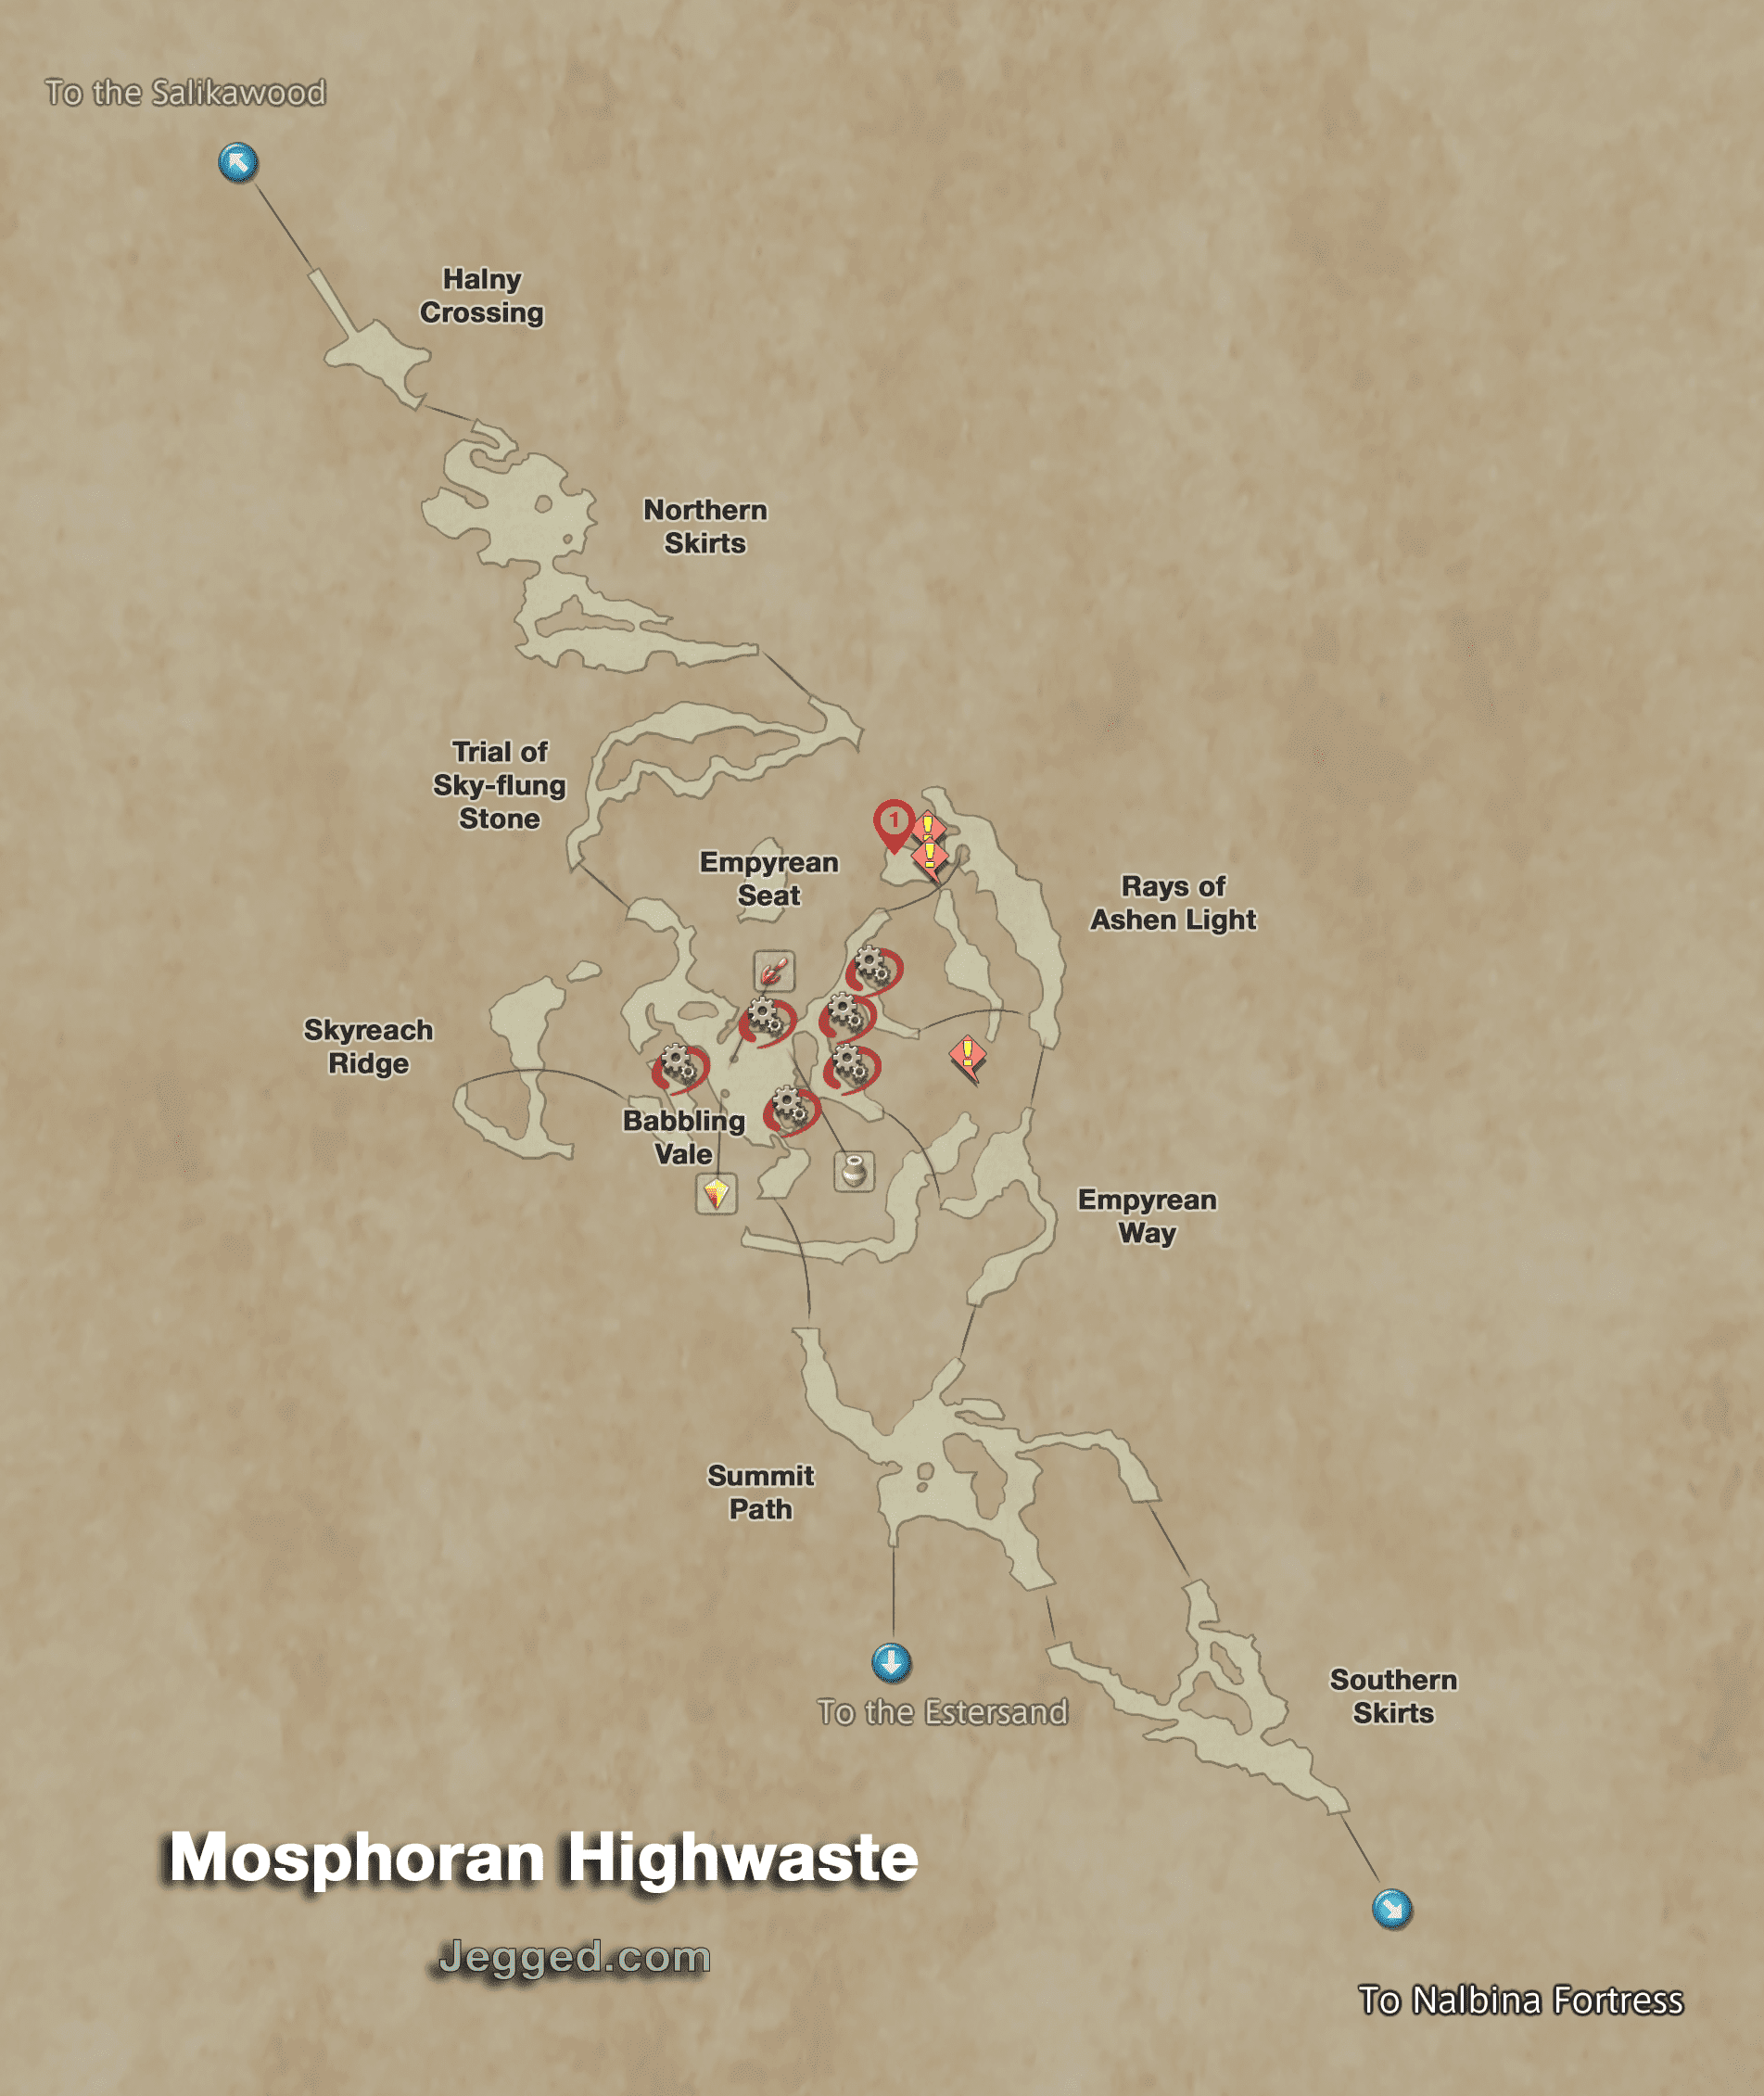 Map of the Mosphoran Highwaste